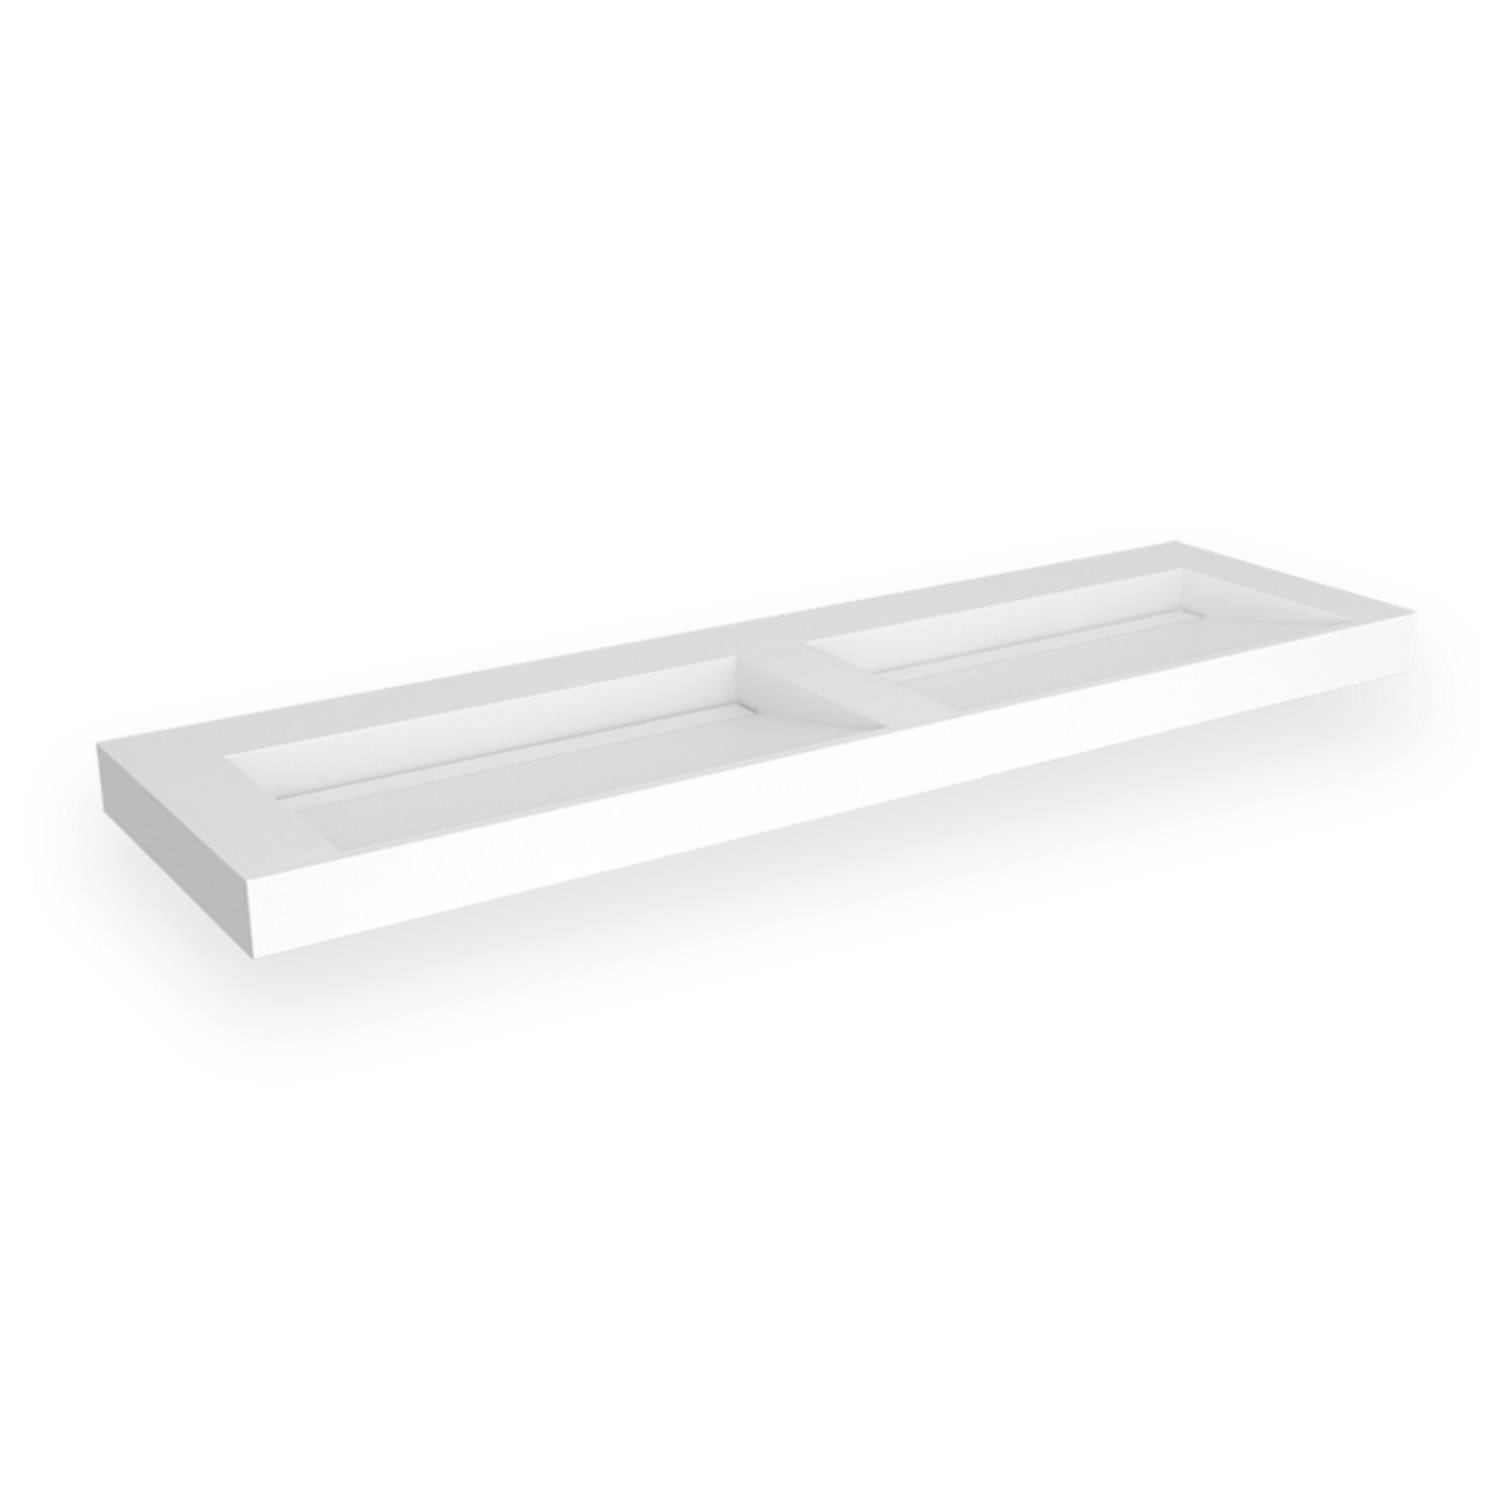 Opbouw Wastafel EH Design Stretto 1605x455x80 mm Solid Surface Mat Wit